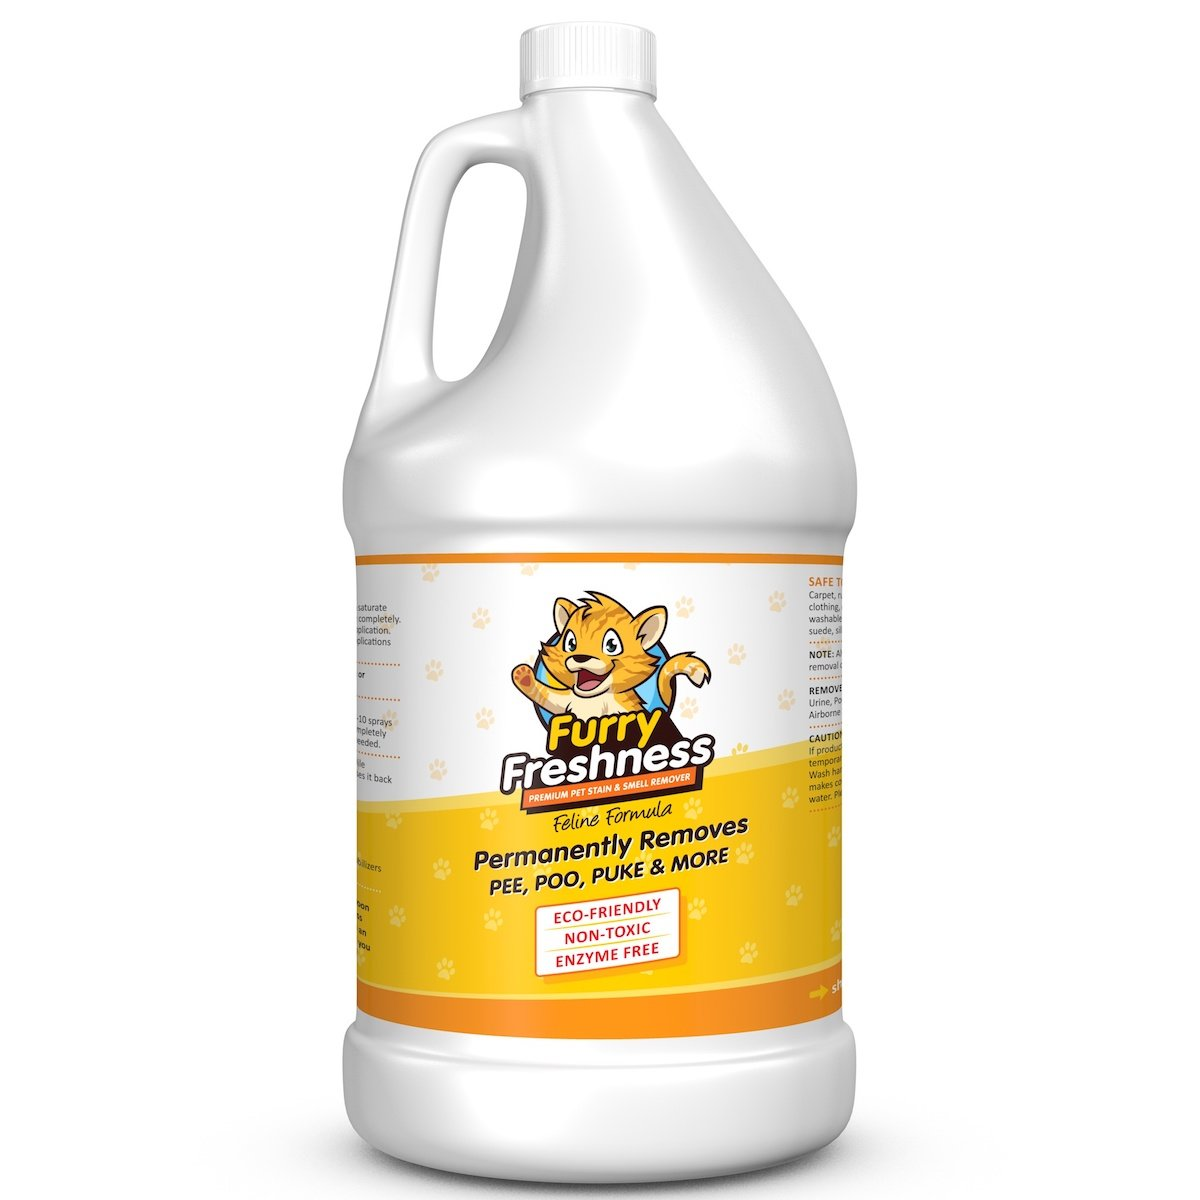 FurryFreshness Premium Pet Stain & Smell Remover - Feline Formula (Gallon) by FurryFreshness